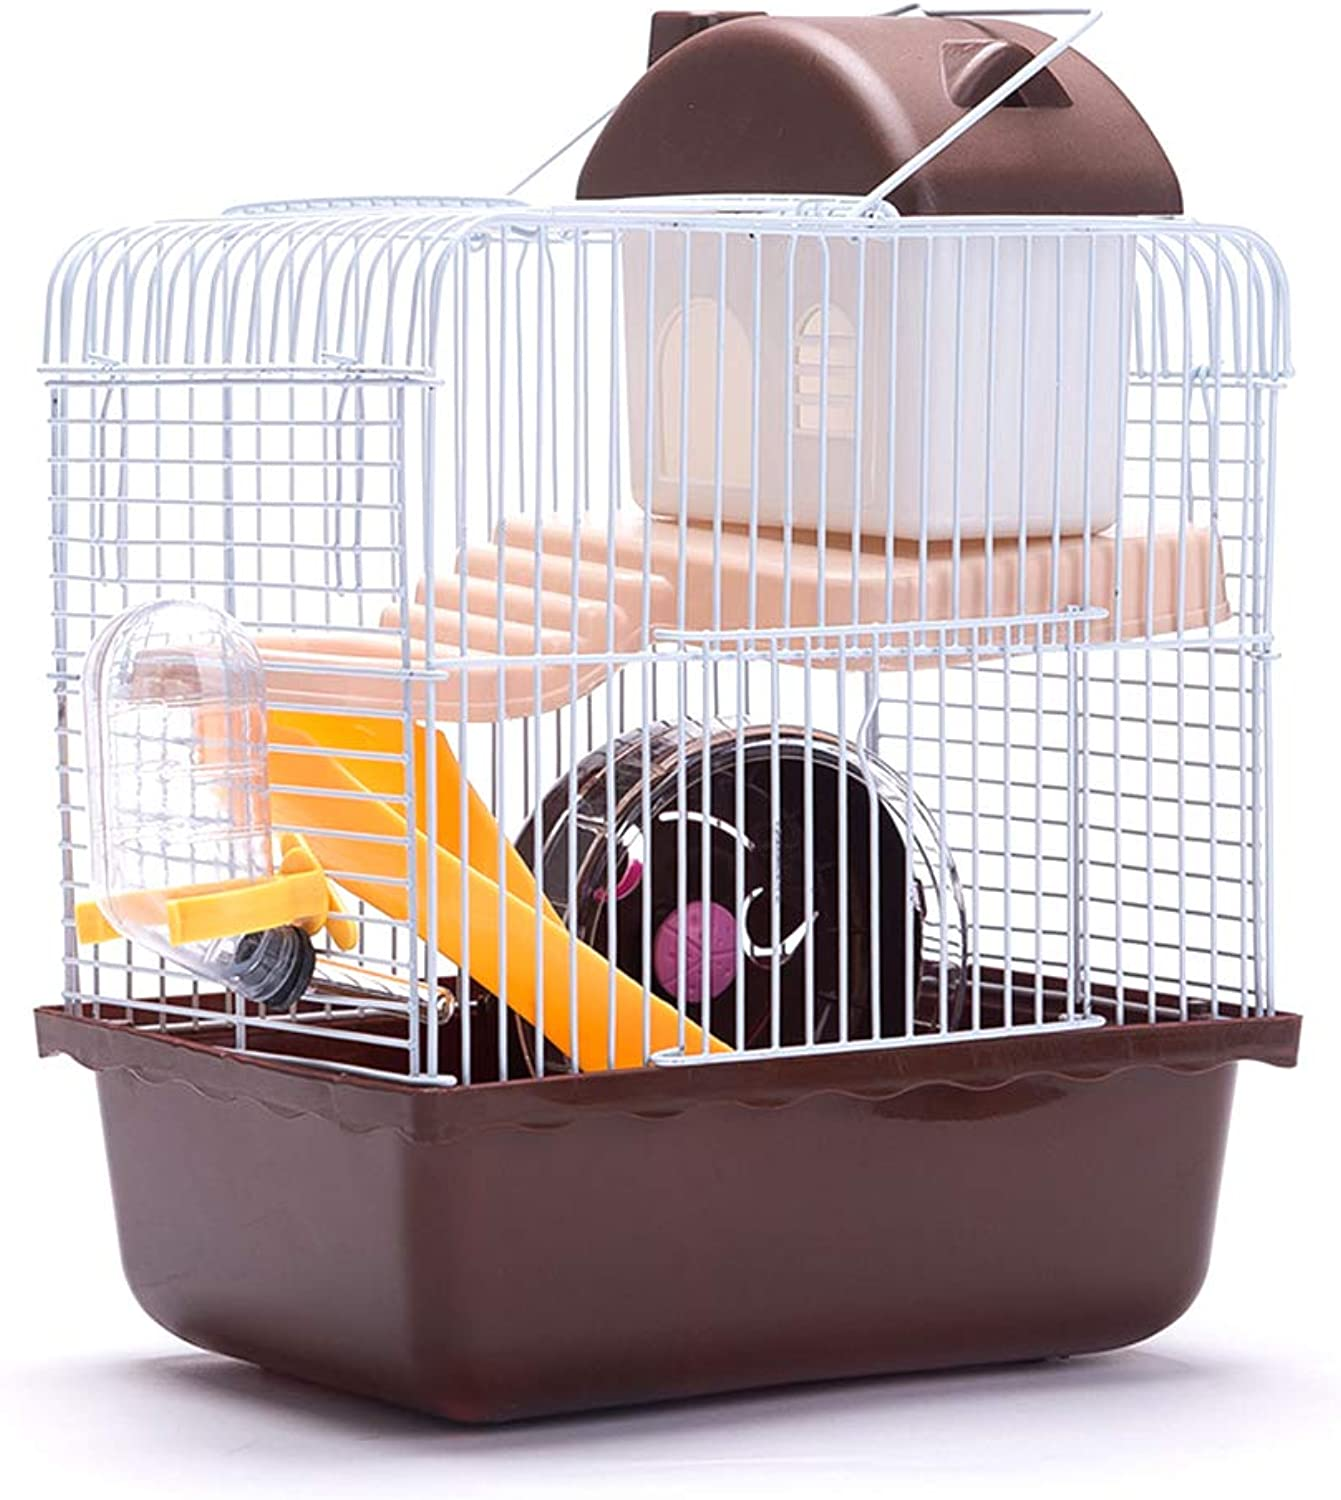 Hamster Cage Small Animal Habitat with Exercise Wheel Water Bottle and Hideout Need to Assemble Yourself for Pets Rodent Gerbil Mouse Mice Rat